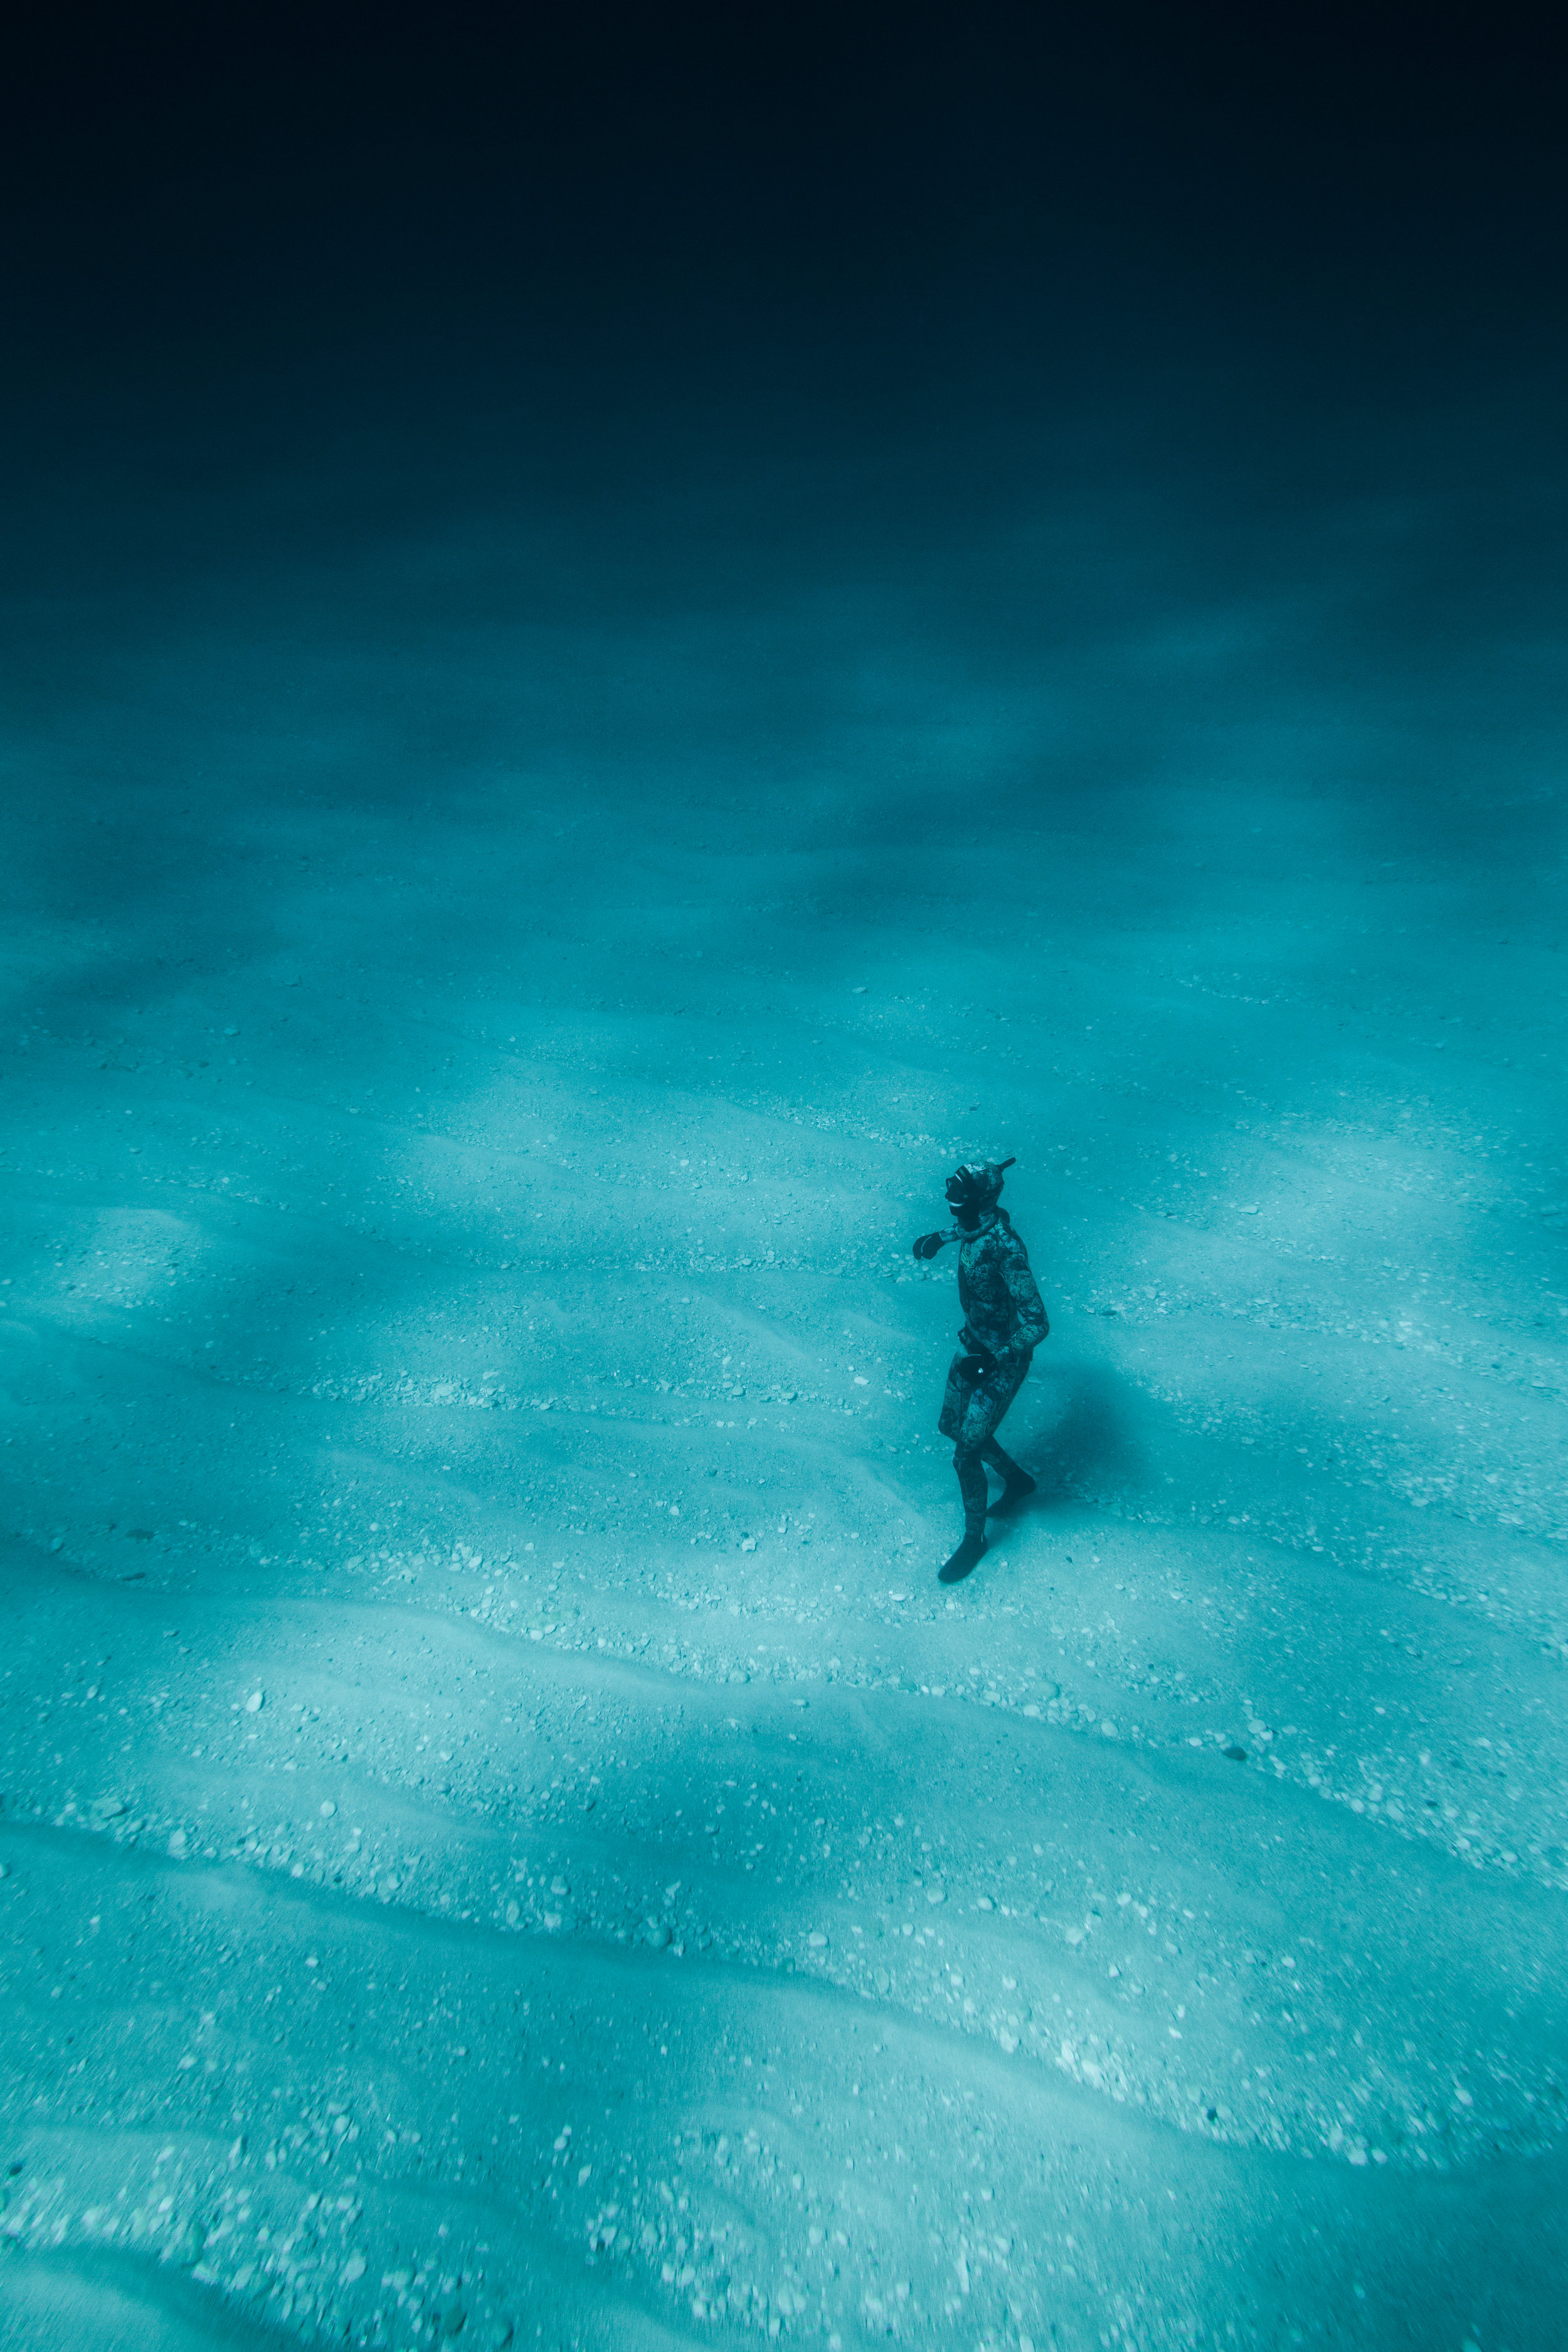 Freediving on the soft sand and pebbles of Lake Huron. ©Geoff Coombs